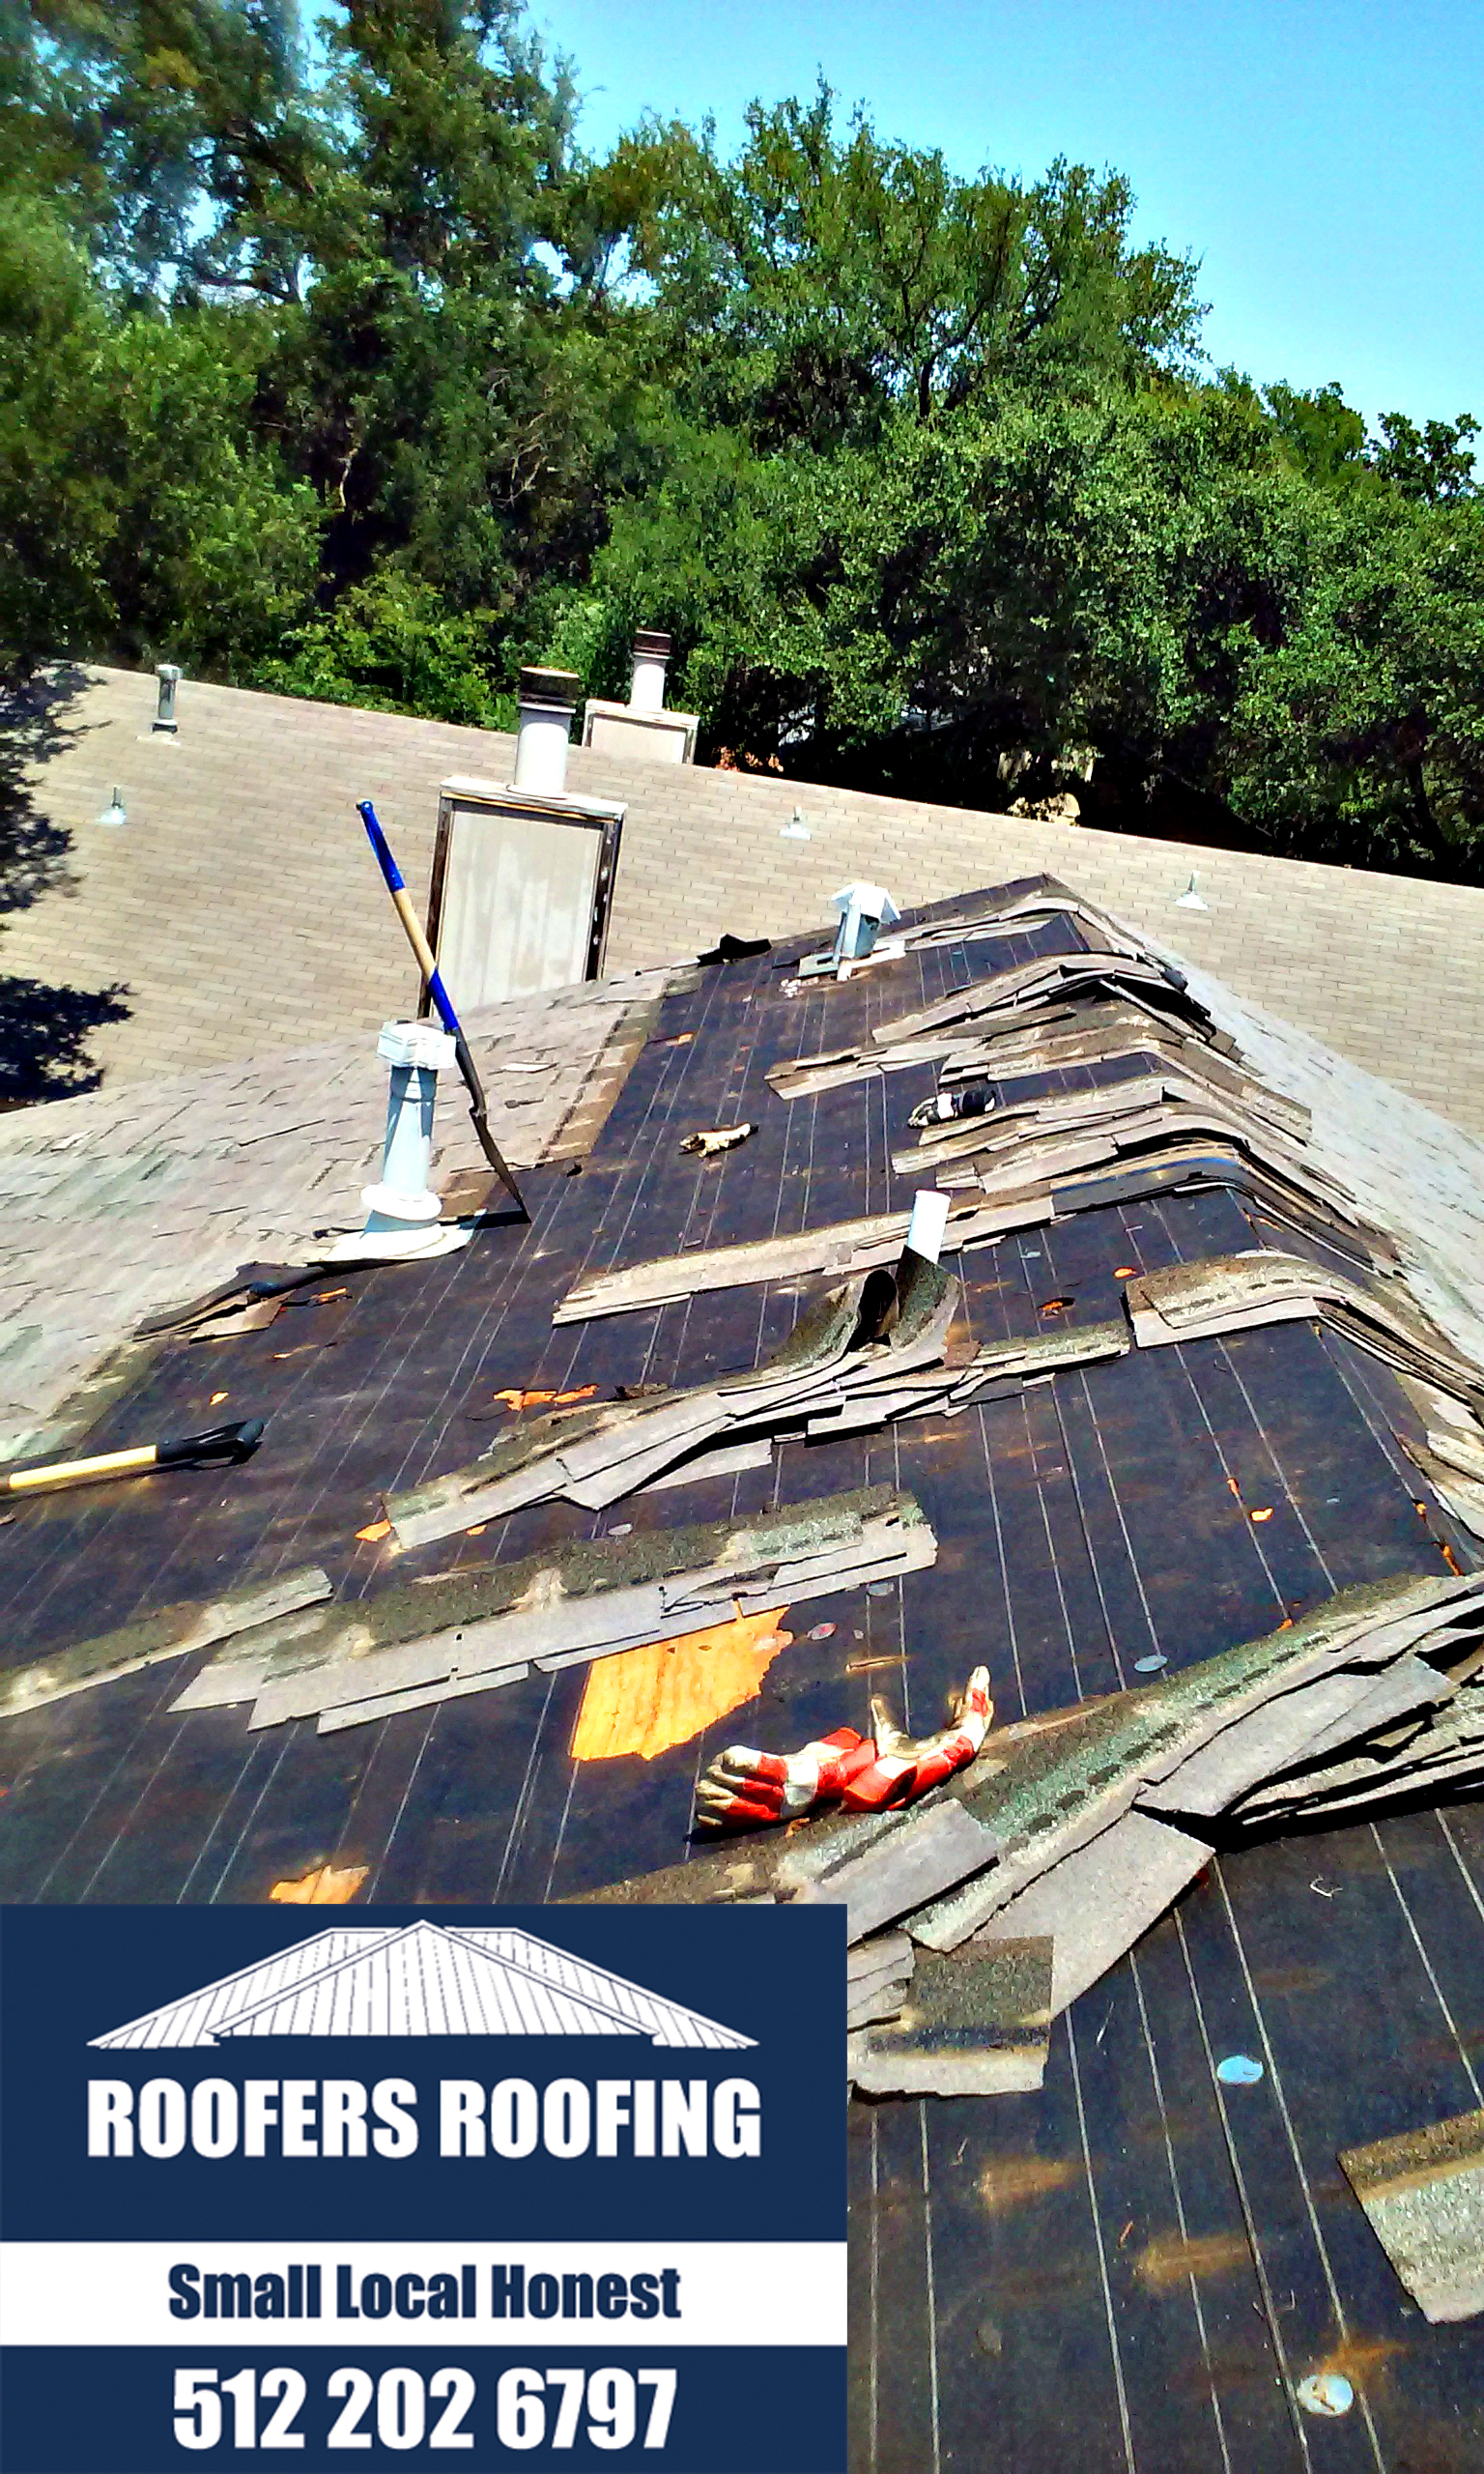 Roofing Austin TX 512 202 6797